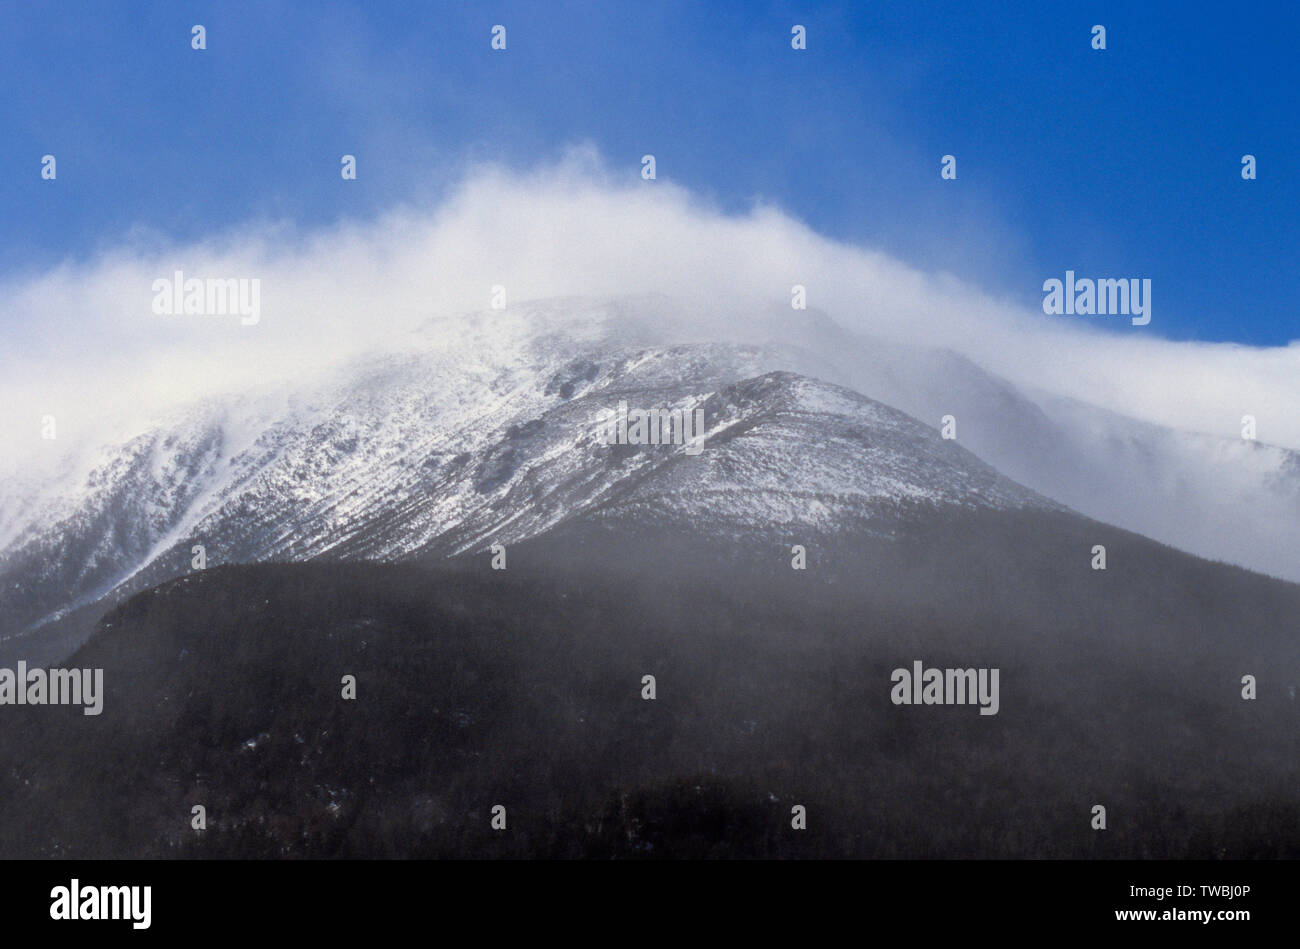 The eastern slope of Mount Washington in the New Hampshire White Mountains during an extremely windy winter day. Stock Photo